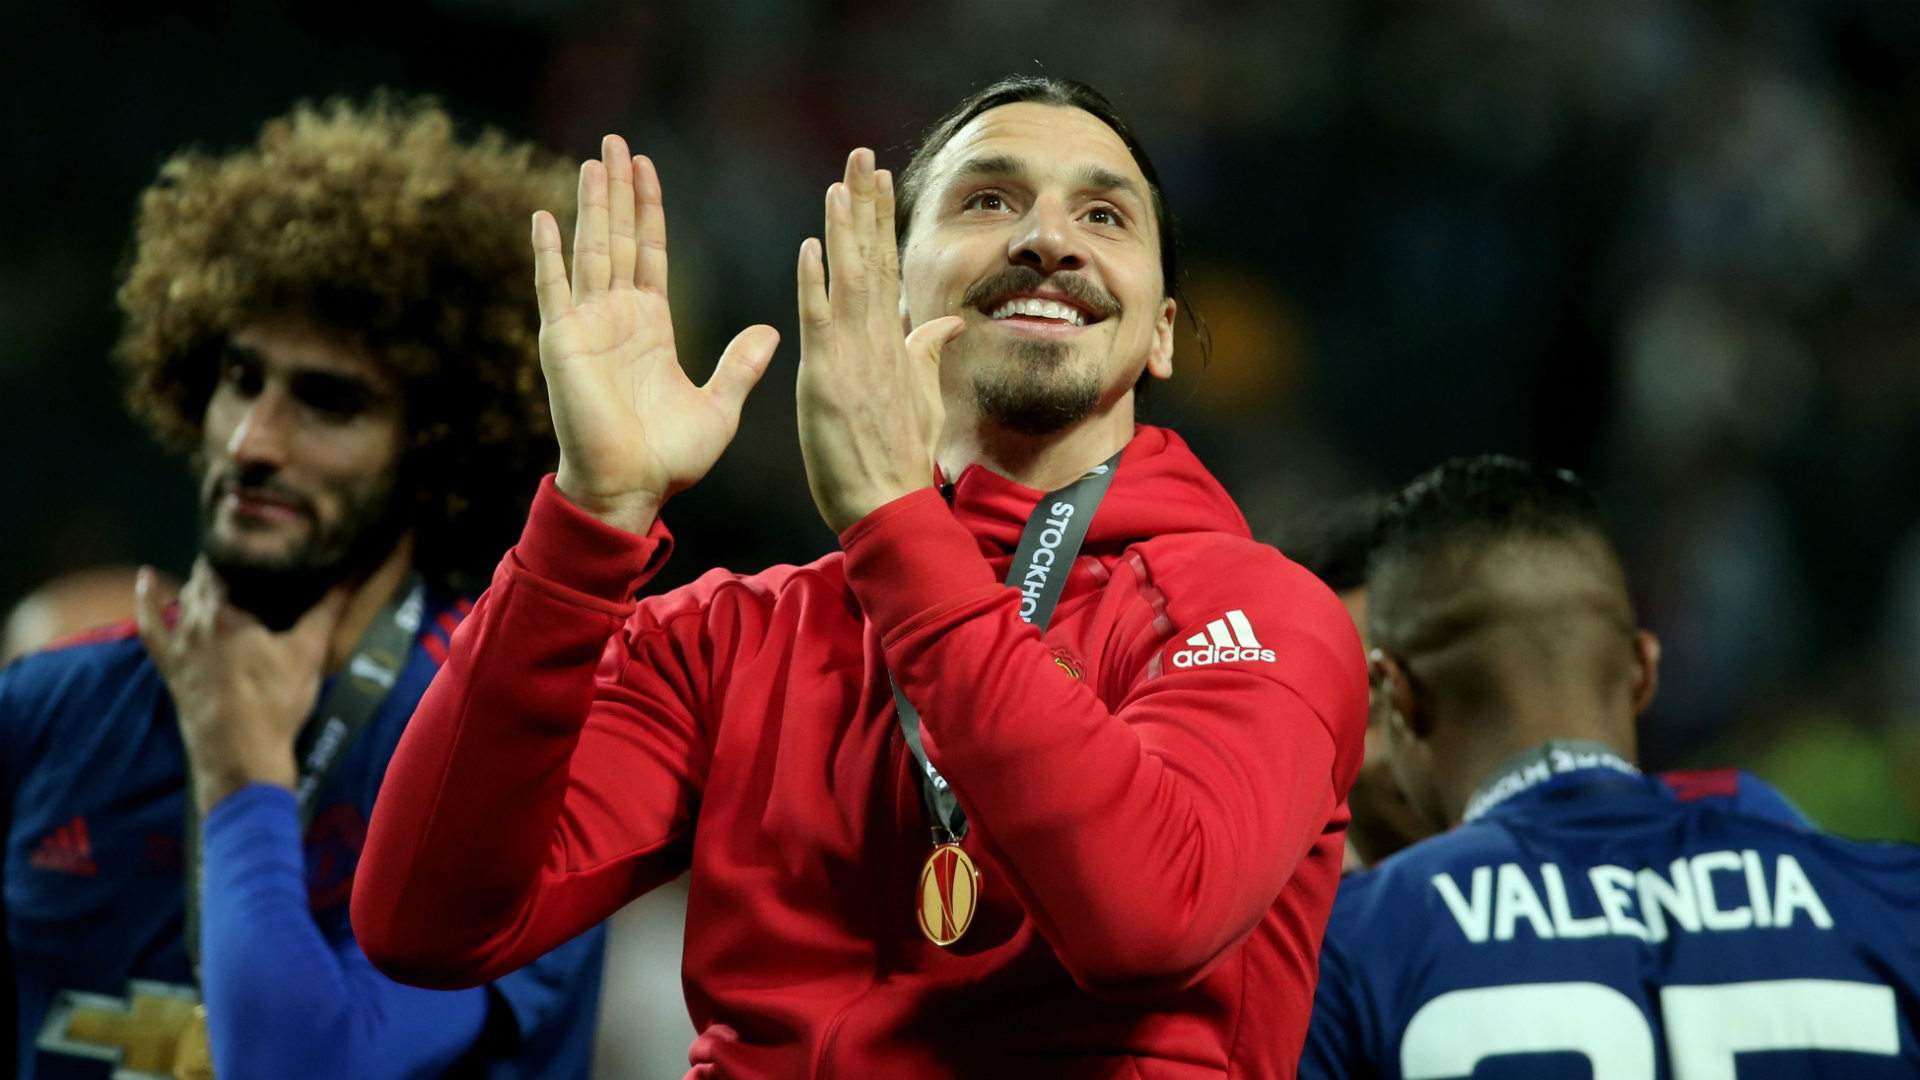 Transfer rumors: LA Galaxy reportedly nearing deal with Zlatan Ibrahimovic